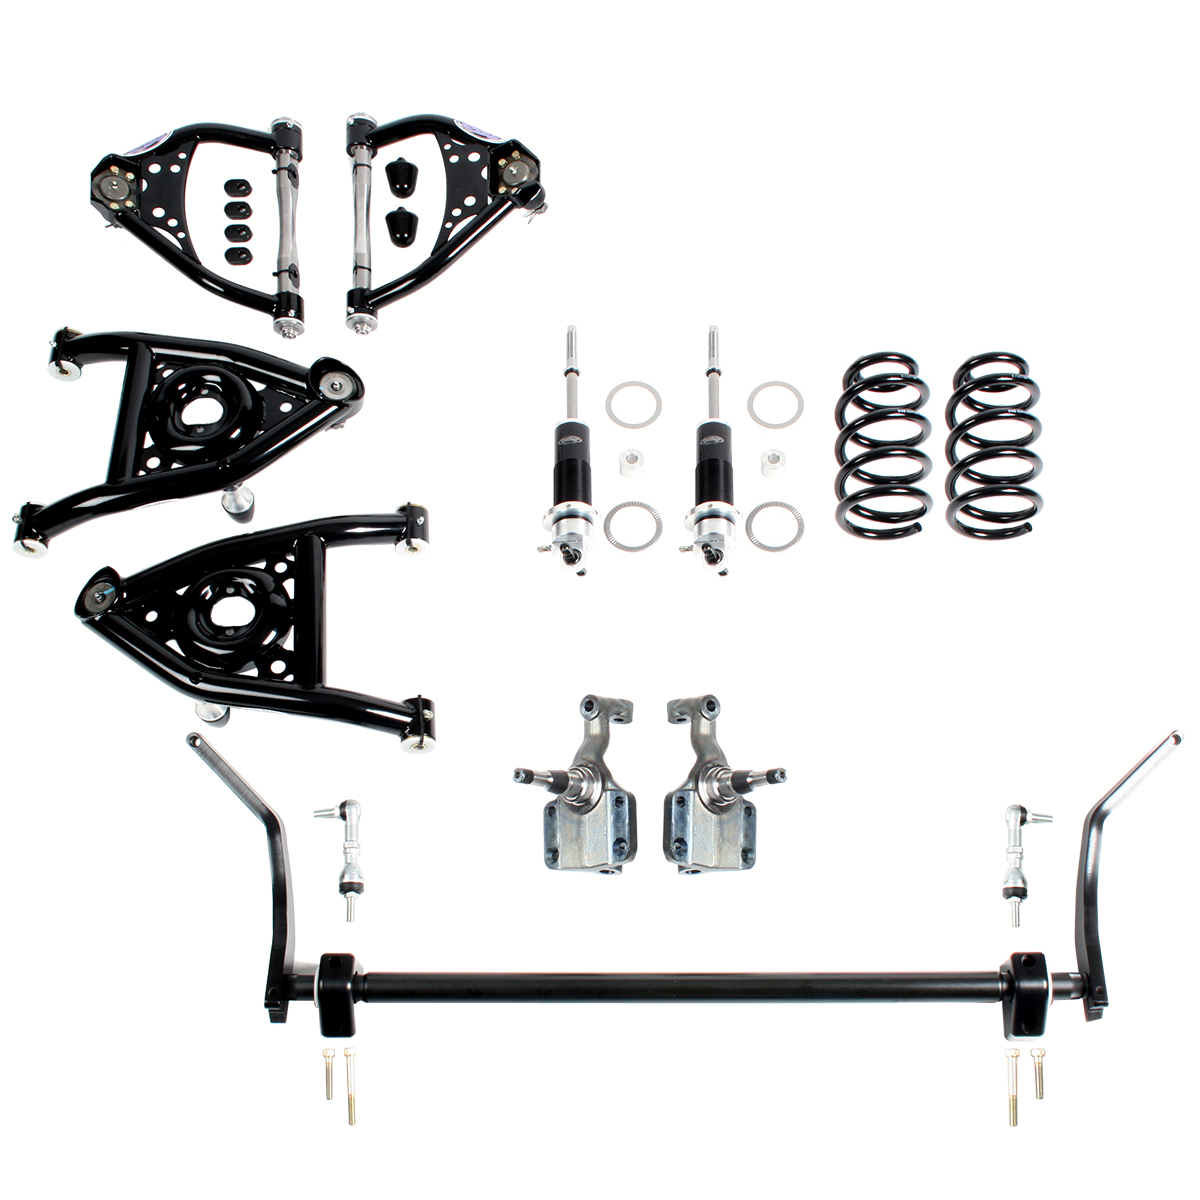 Detroit Speed  Speed Kit 2 Front Suspension Kit with Splined Sway Bar Base Shocks 1968-1972 A-Body SBC/LS